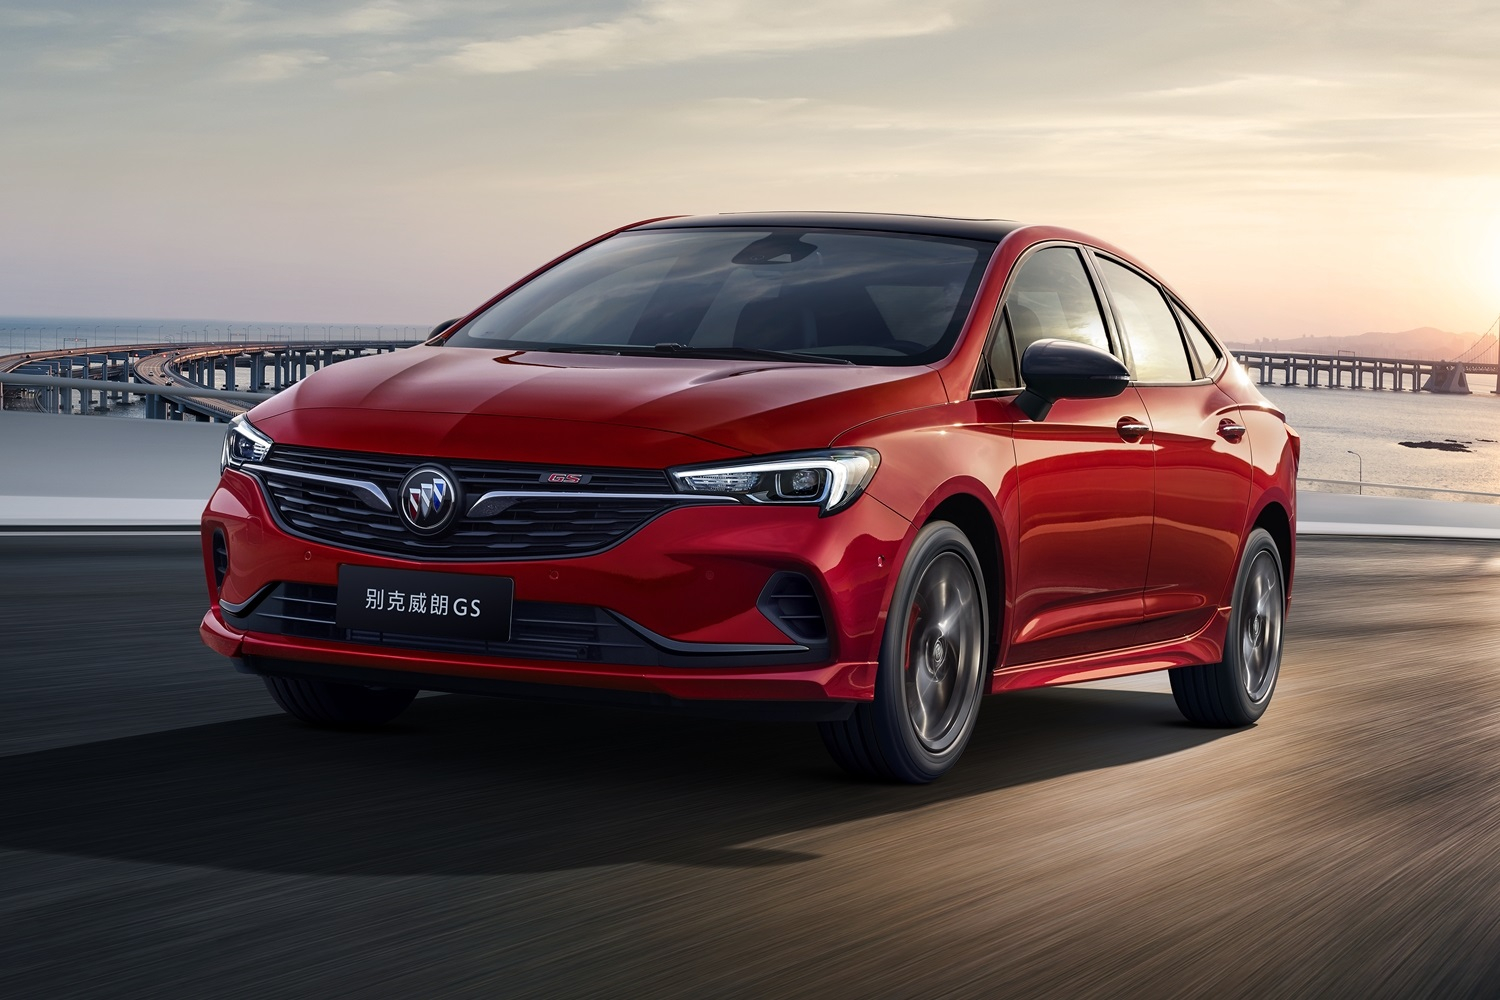 New 2021 Buick Verano Gs Launches In China | Gm Authority New 2022 Buick Verano Models, Lease, Engine Size